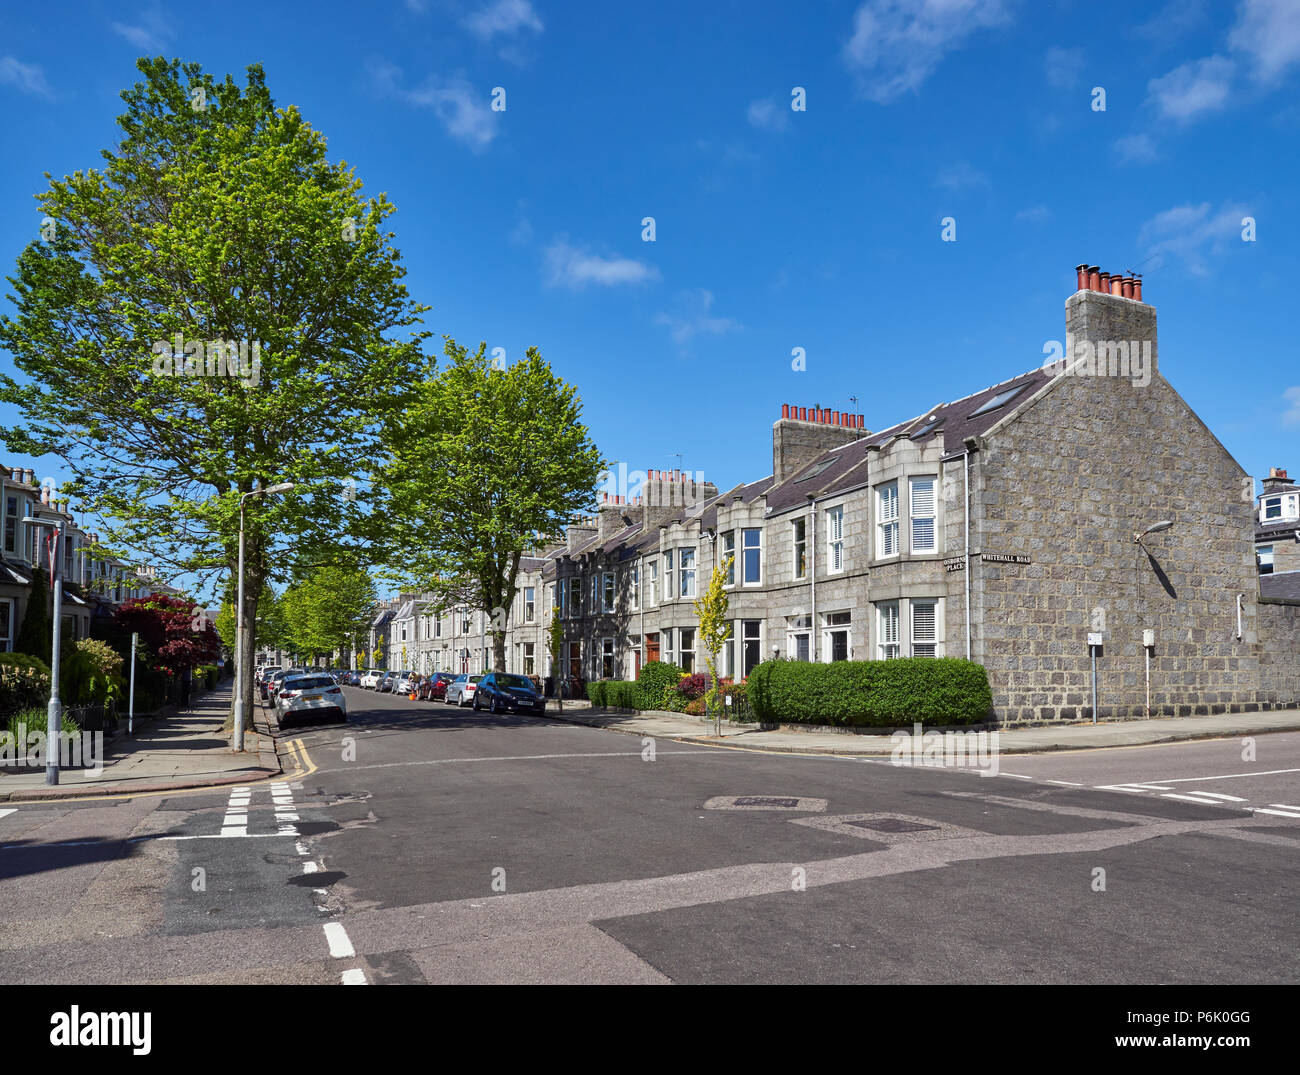 The Substantial Granite terraced houses in Aberdeen City Suburbs near the Grammar School. Osbourne Place, Aberdeen, Scotland. - Stock Image